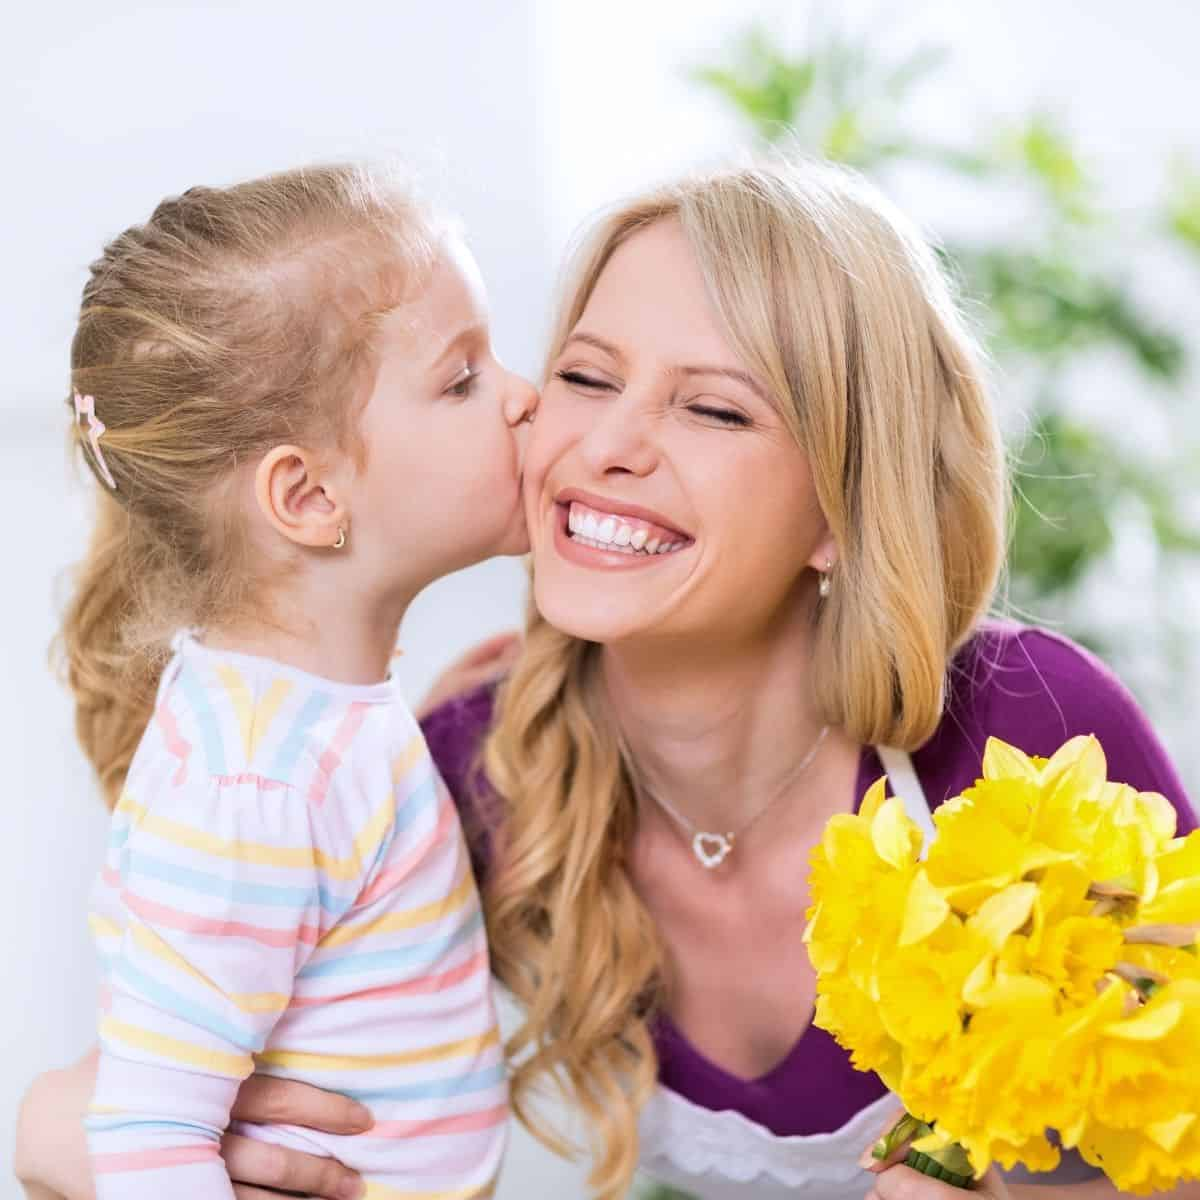 mother and child on mother's day with flowers